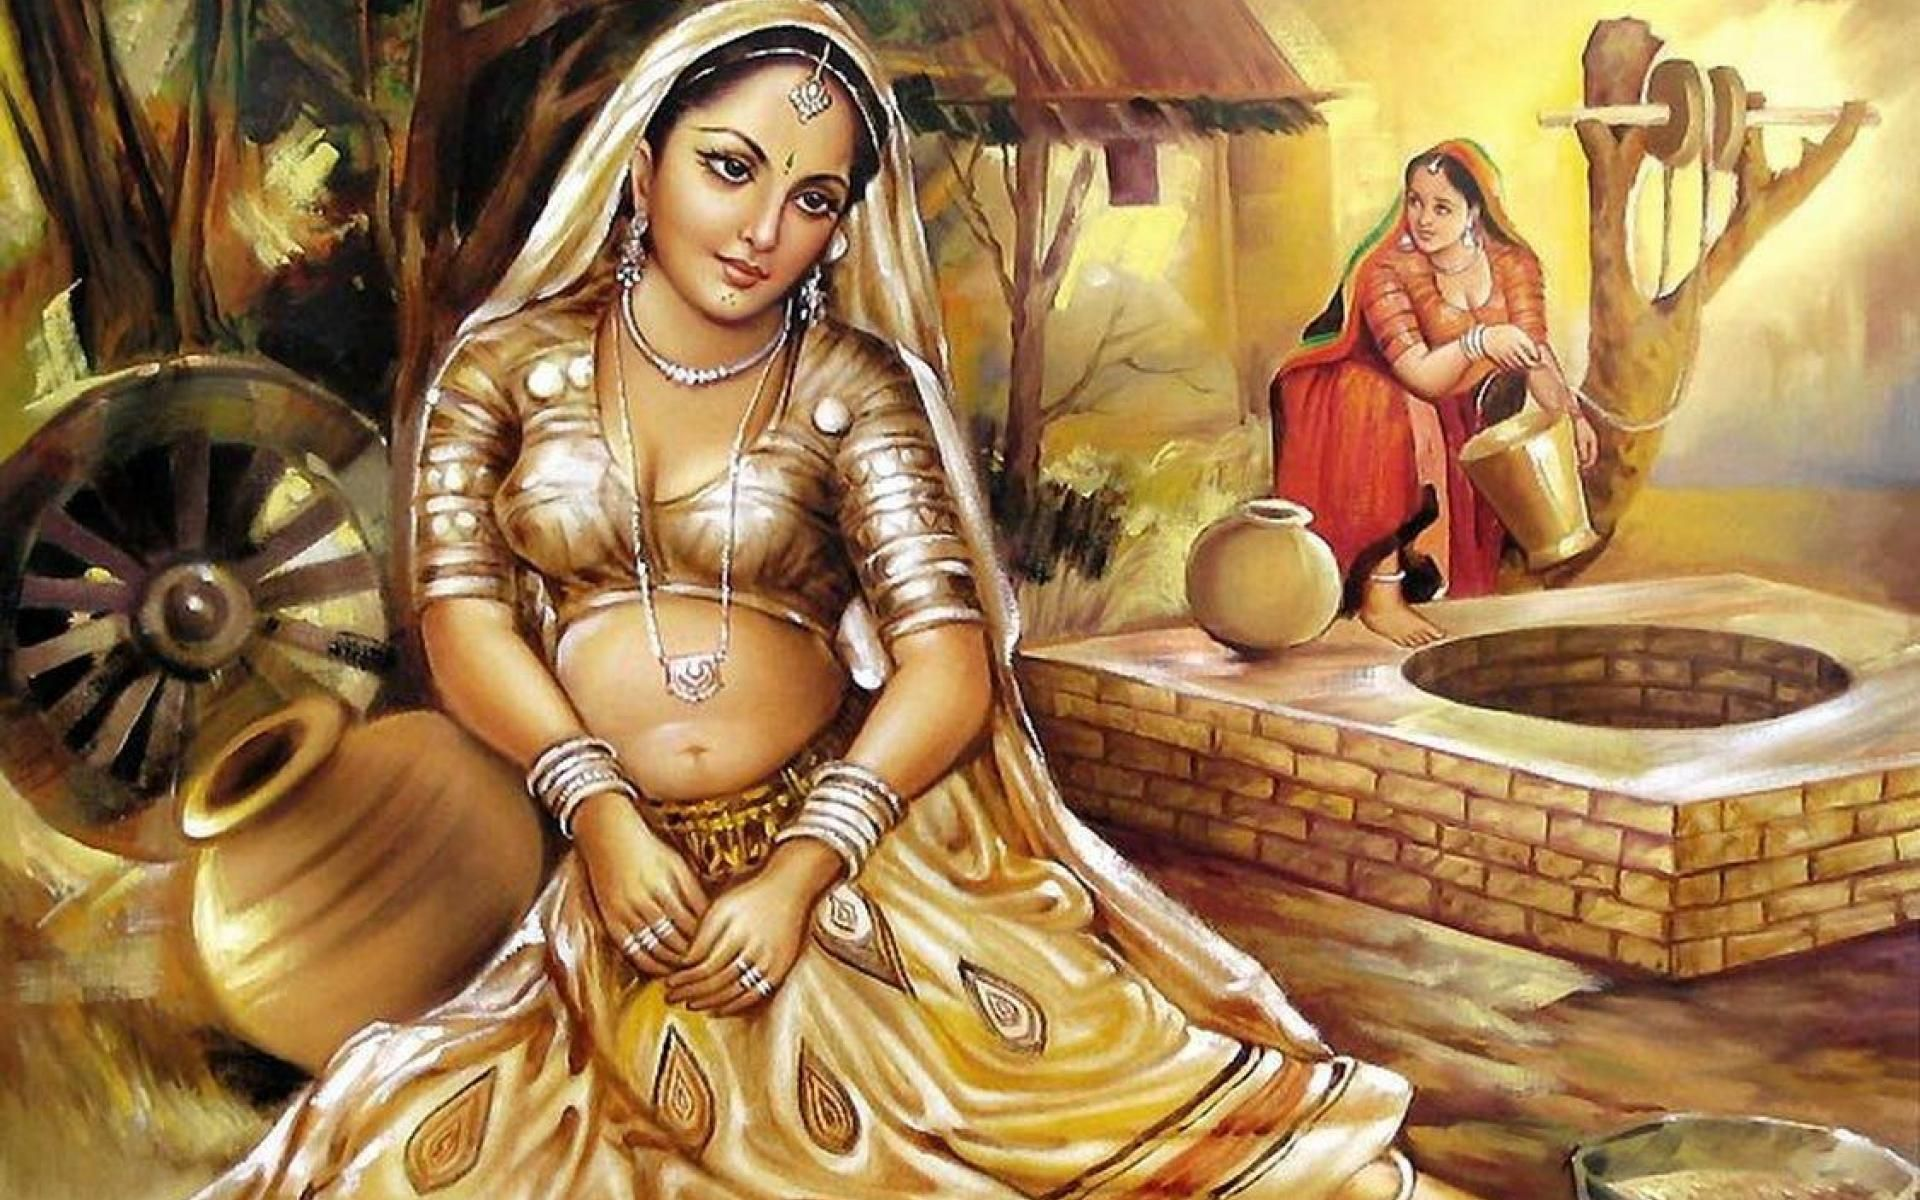 Woman Painting Of Indian Culture Hd Wallpaper For Desktop Painting Of Girl Indian Artist Indian Paintings